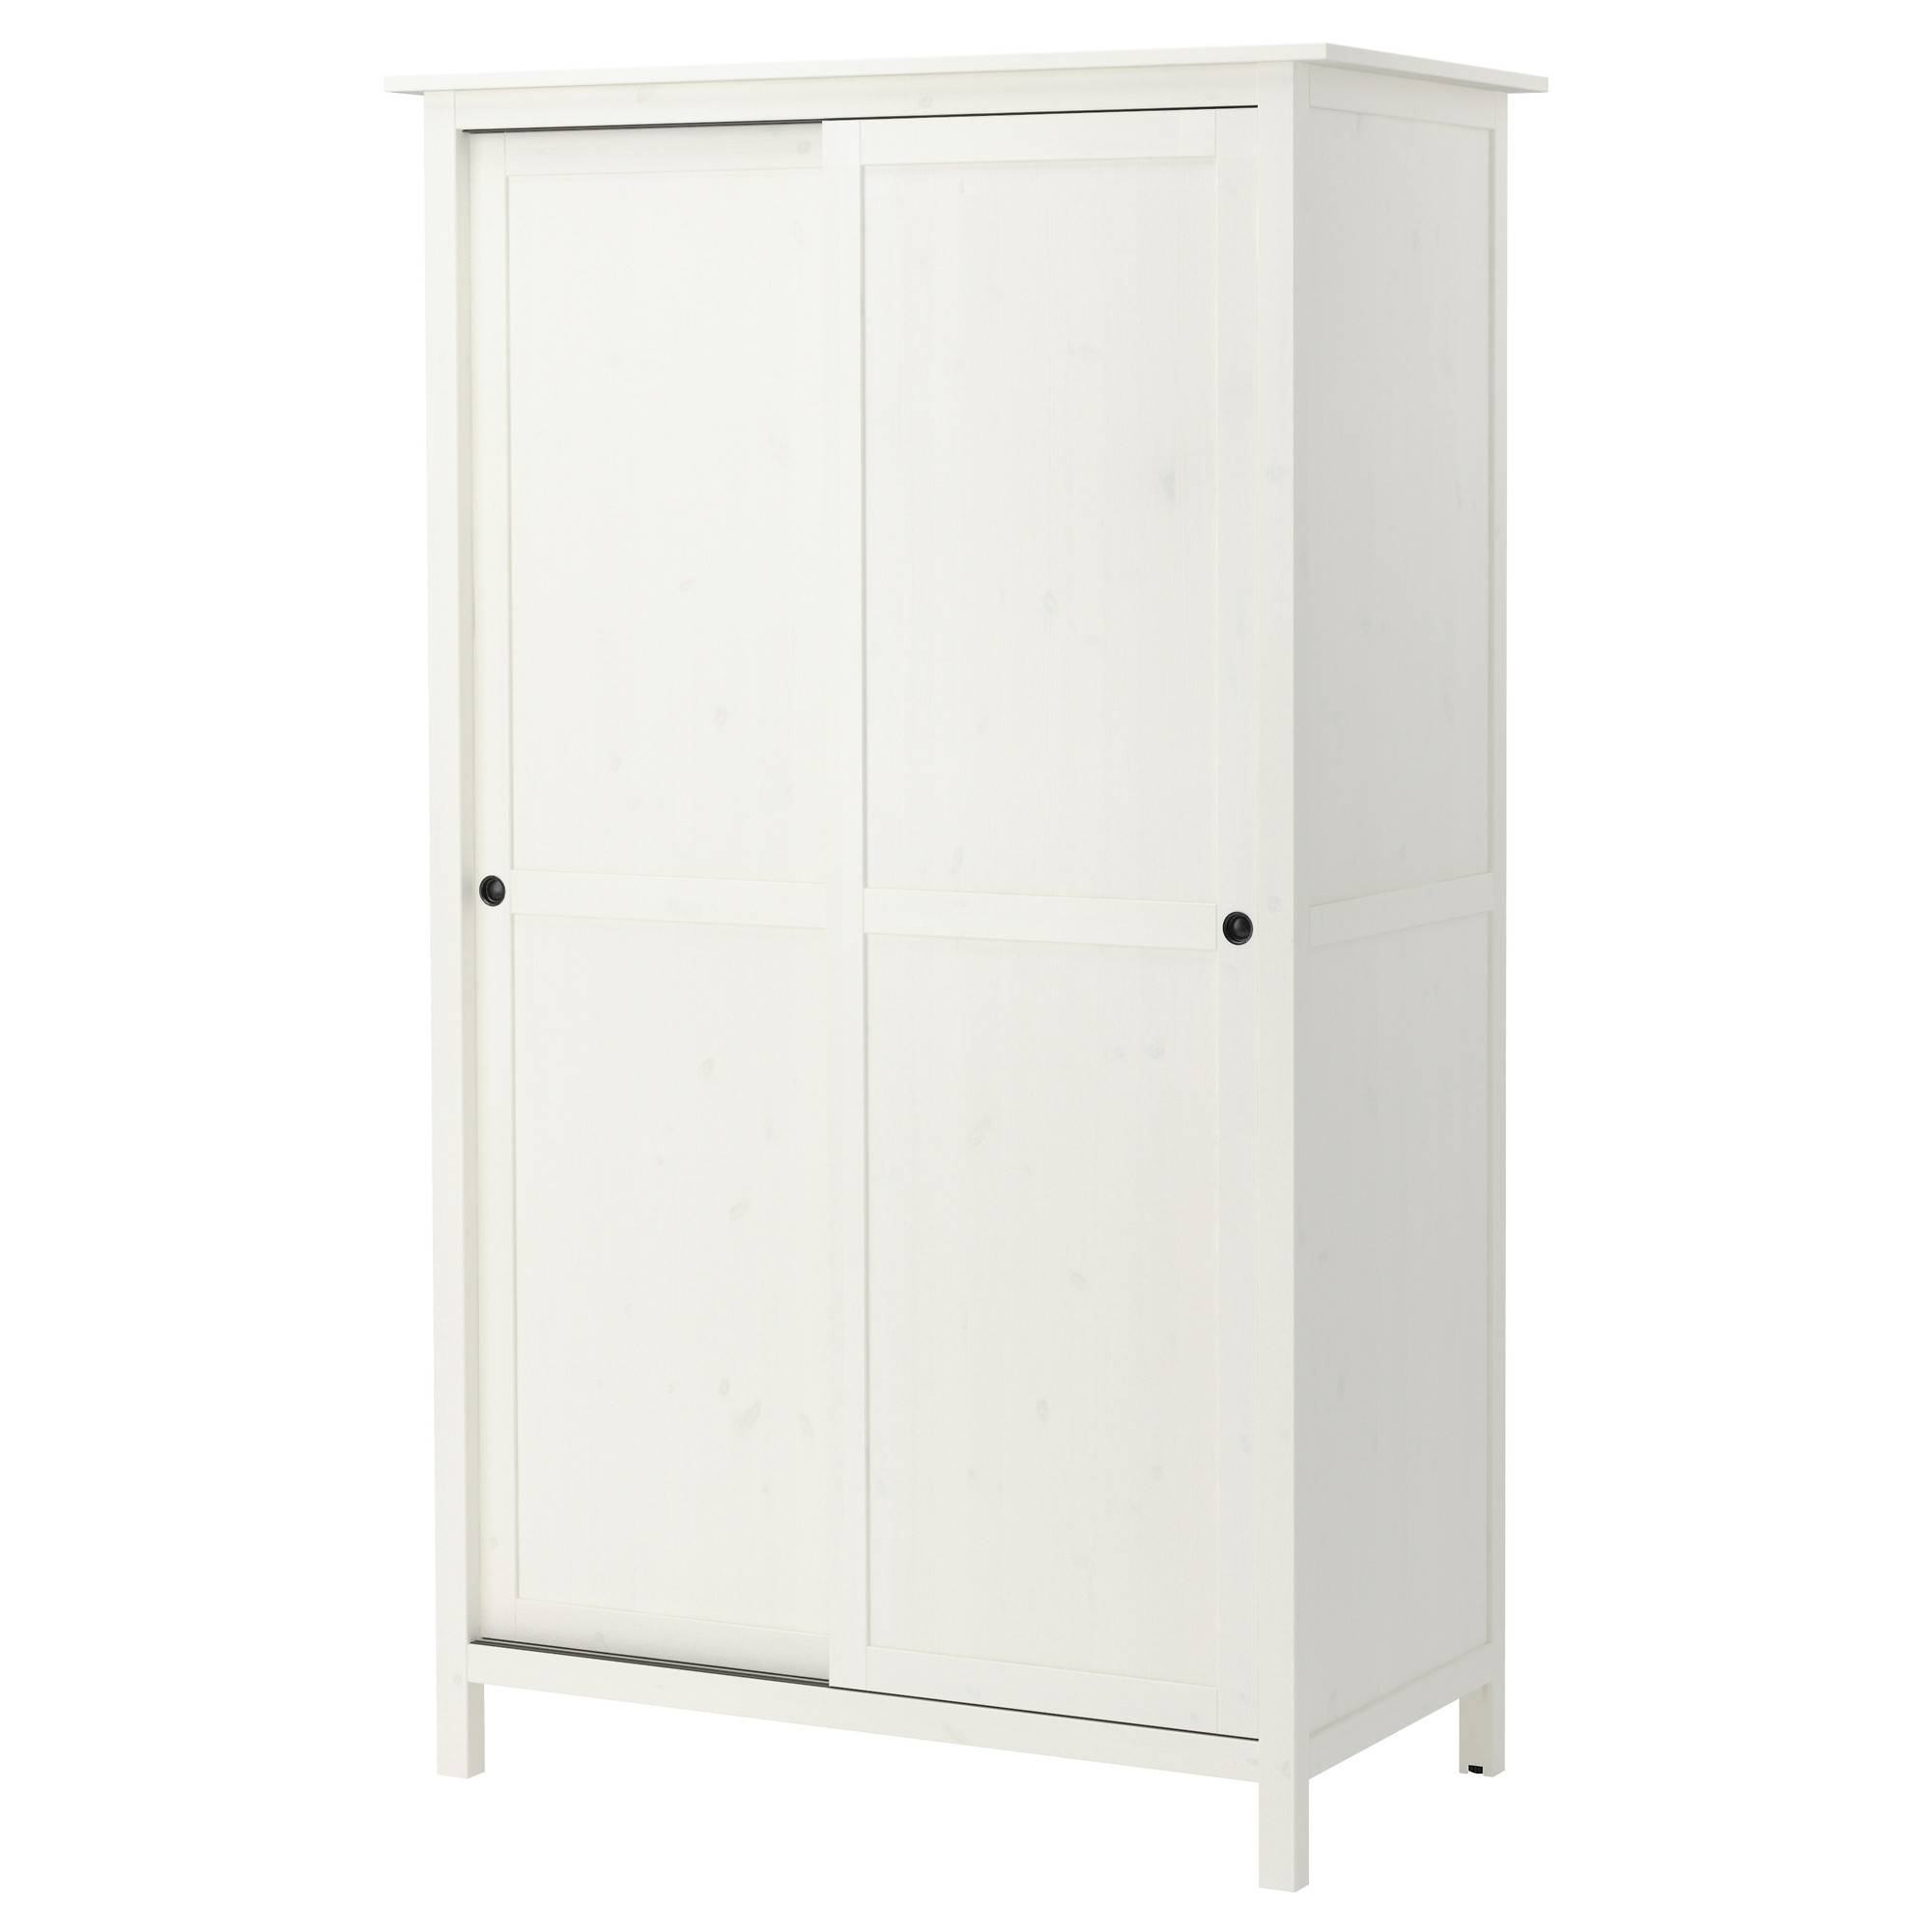 Wardrobes | Ikea with regard to Two Door White Wardrobes (Image 14 of 15)